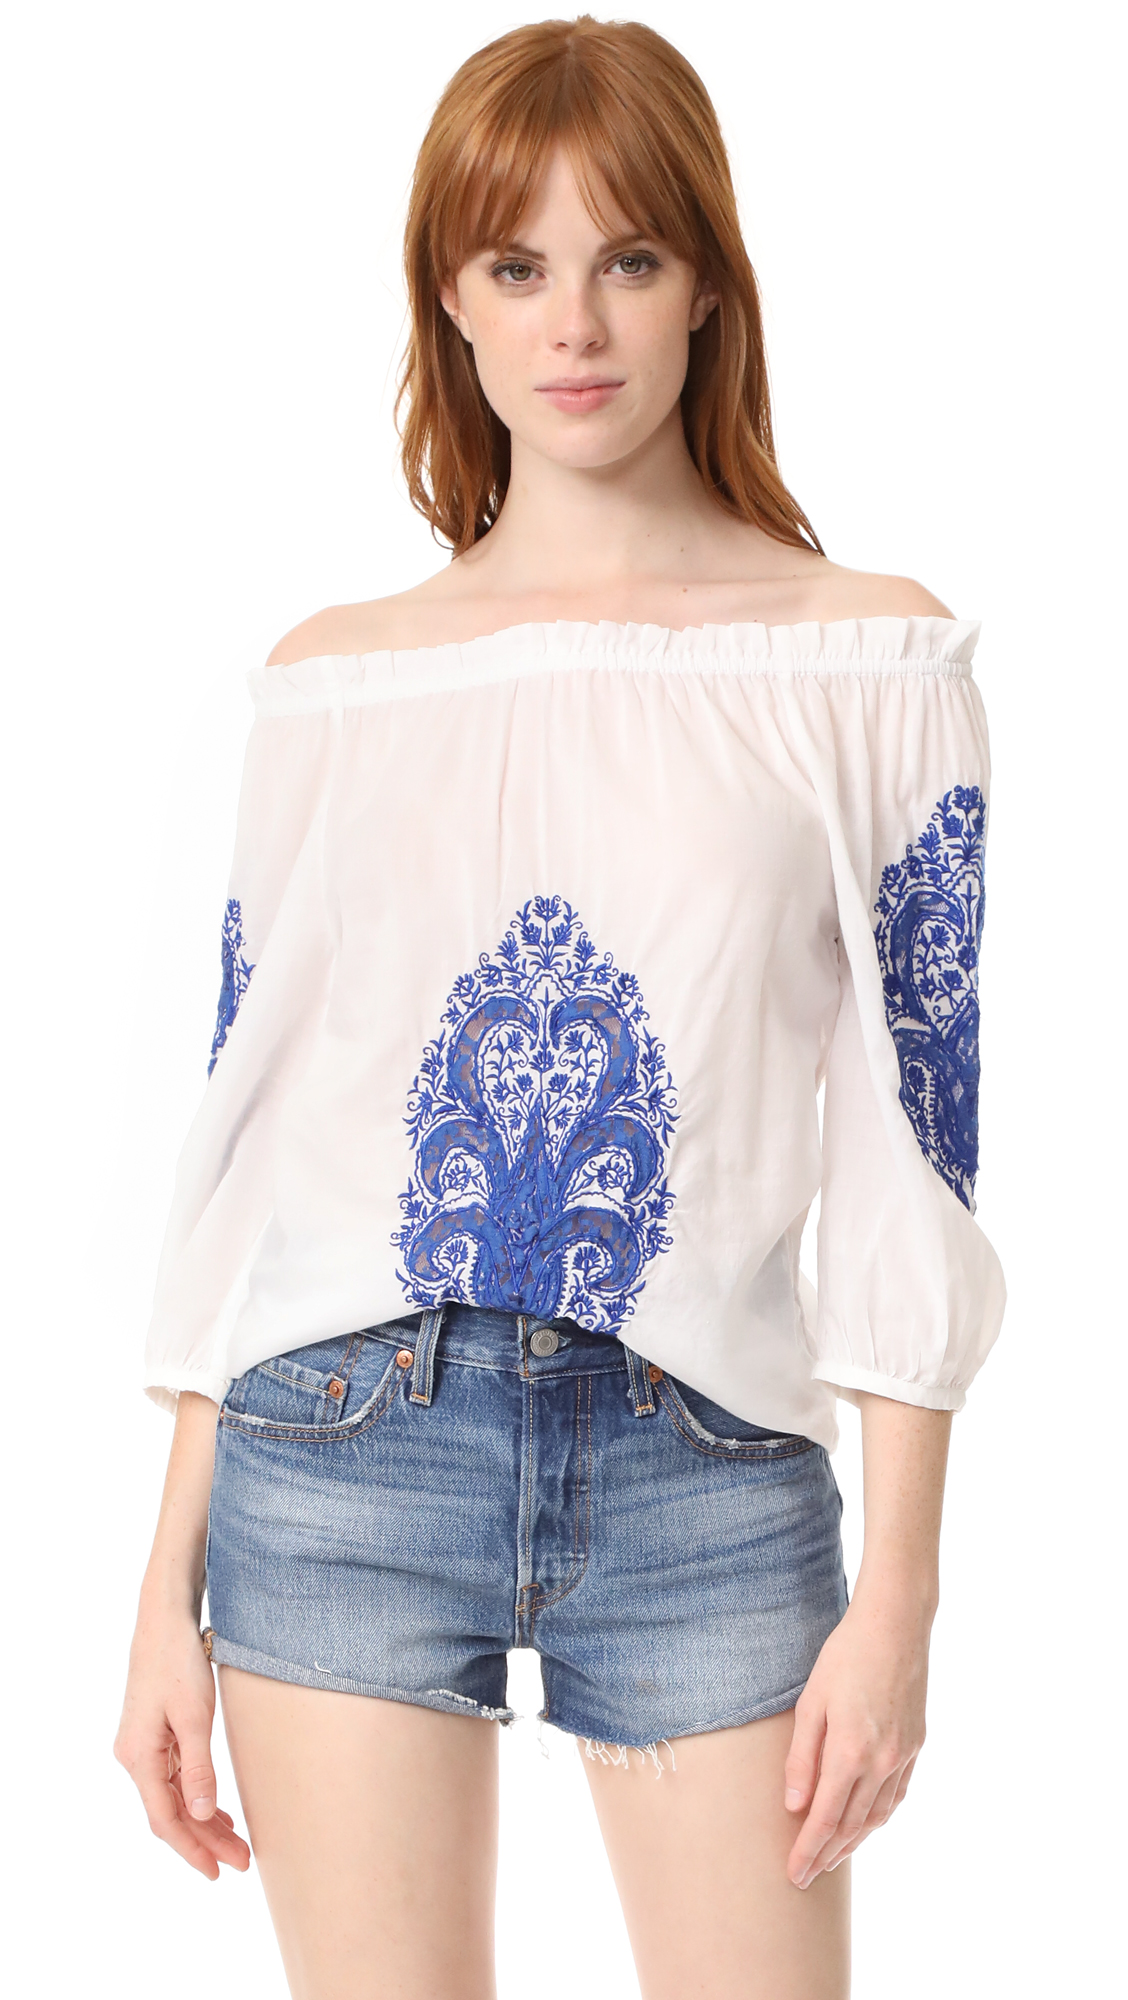 Christophe Sauvat Collection Cai Cai Off Shoulder Top - White/Blue